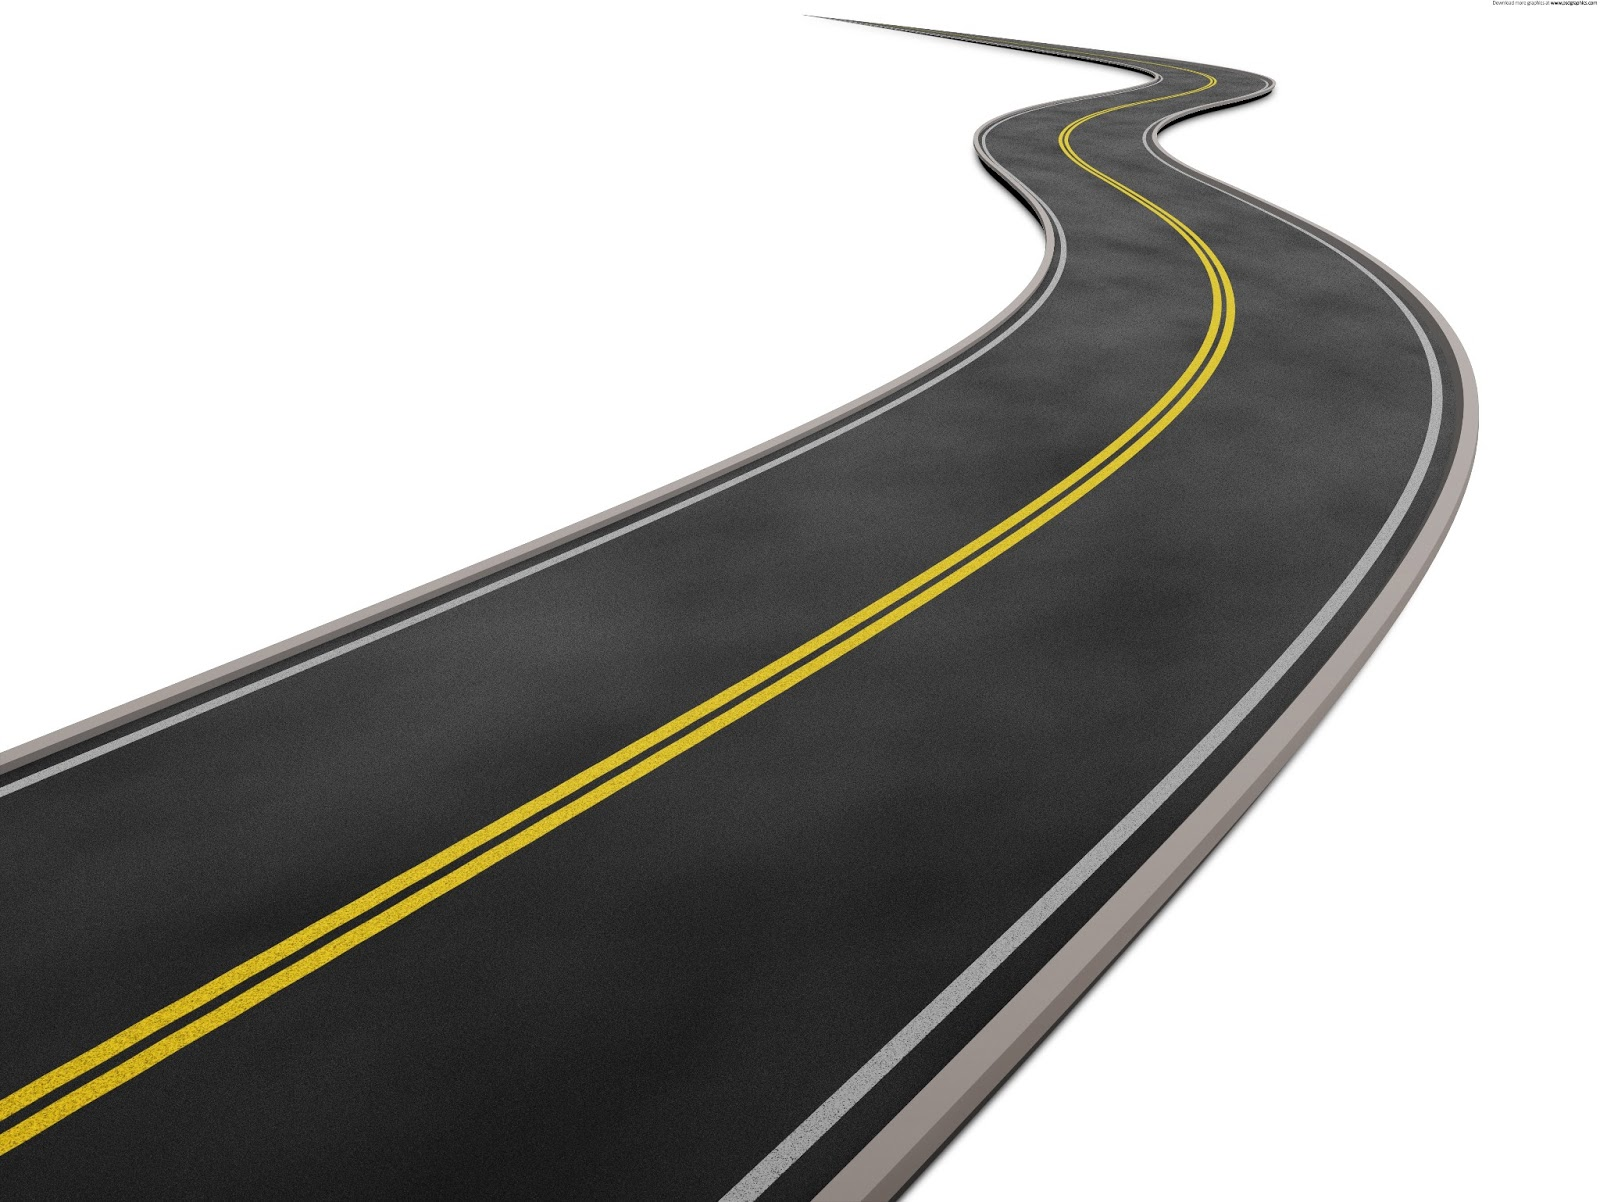 Straight Road Clipart Downloads. - PNG Horizontal Road